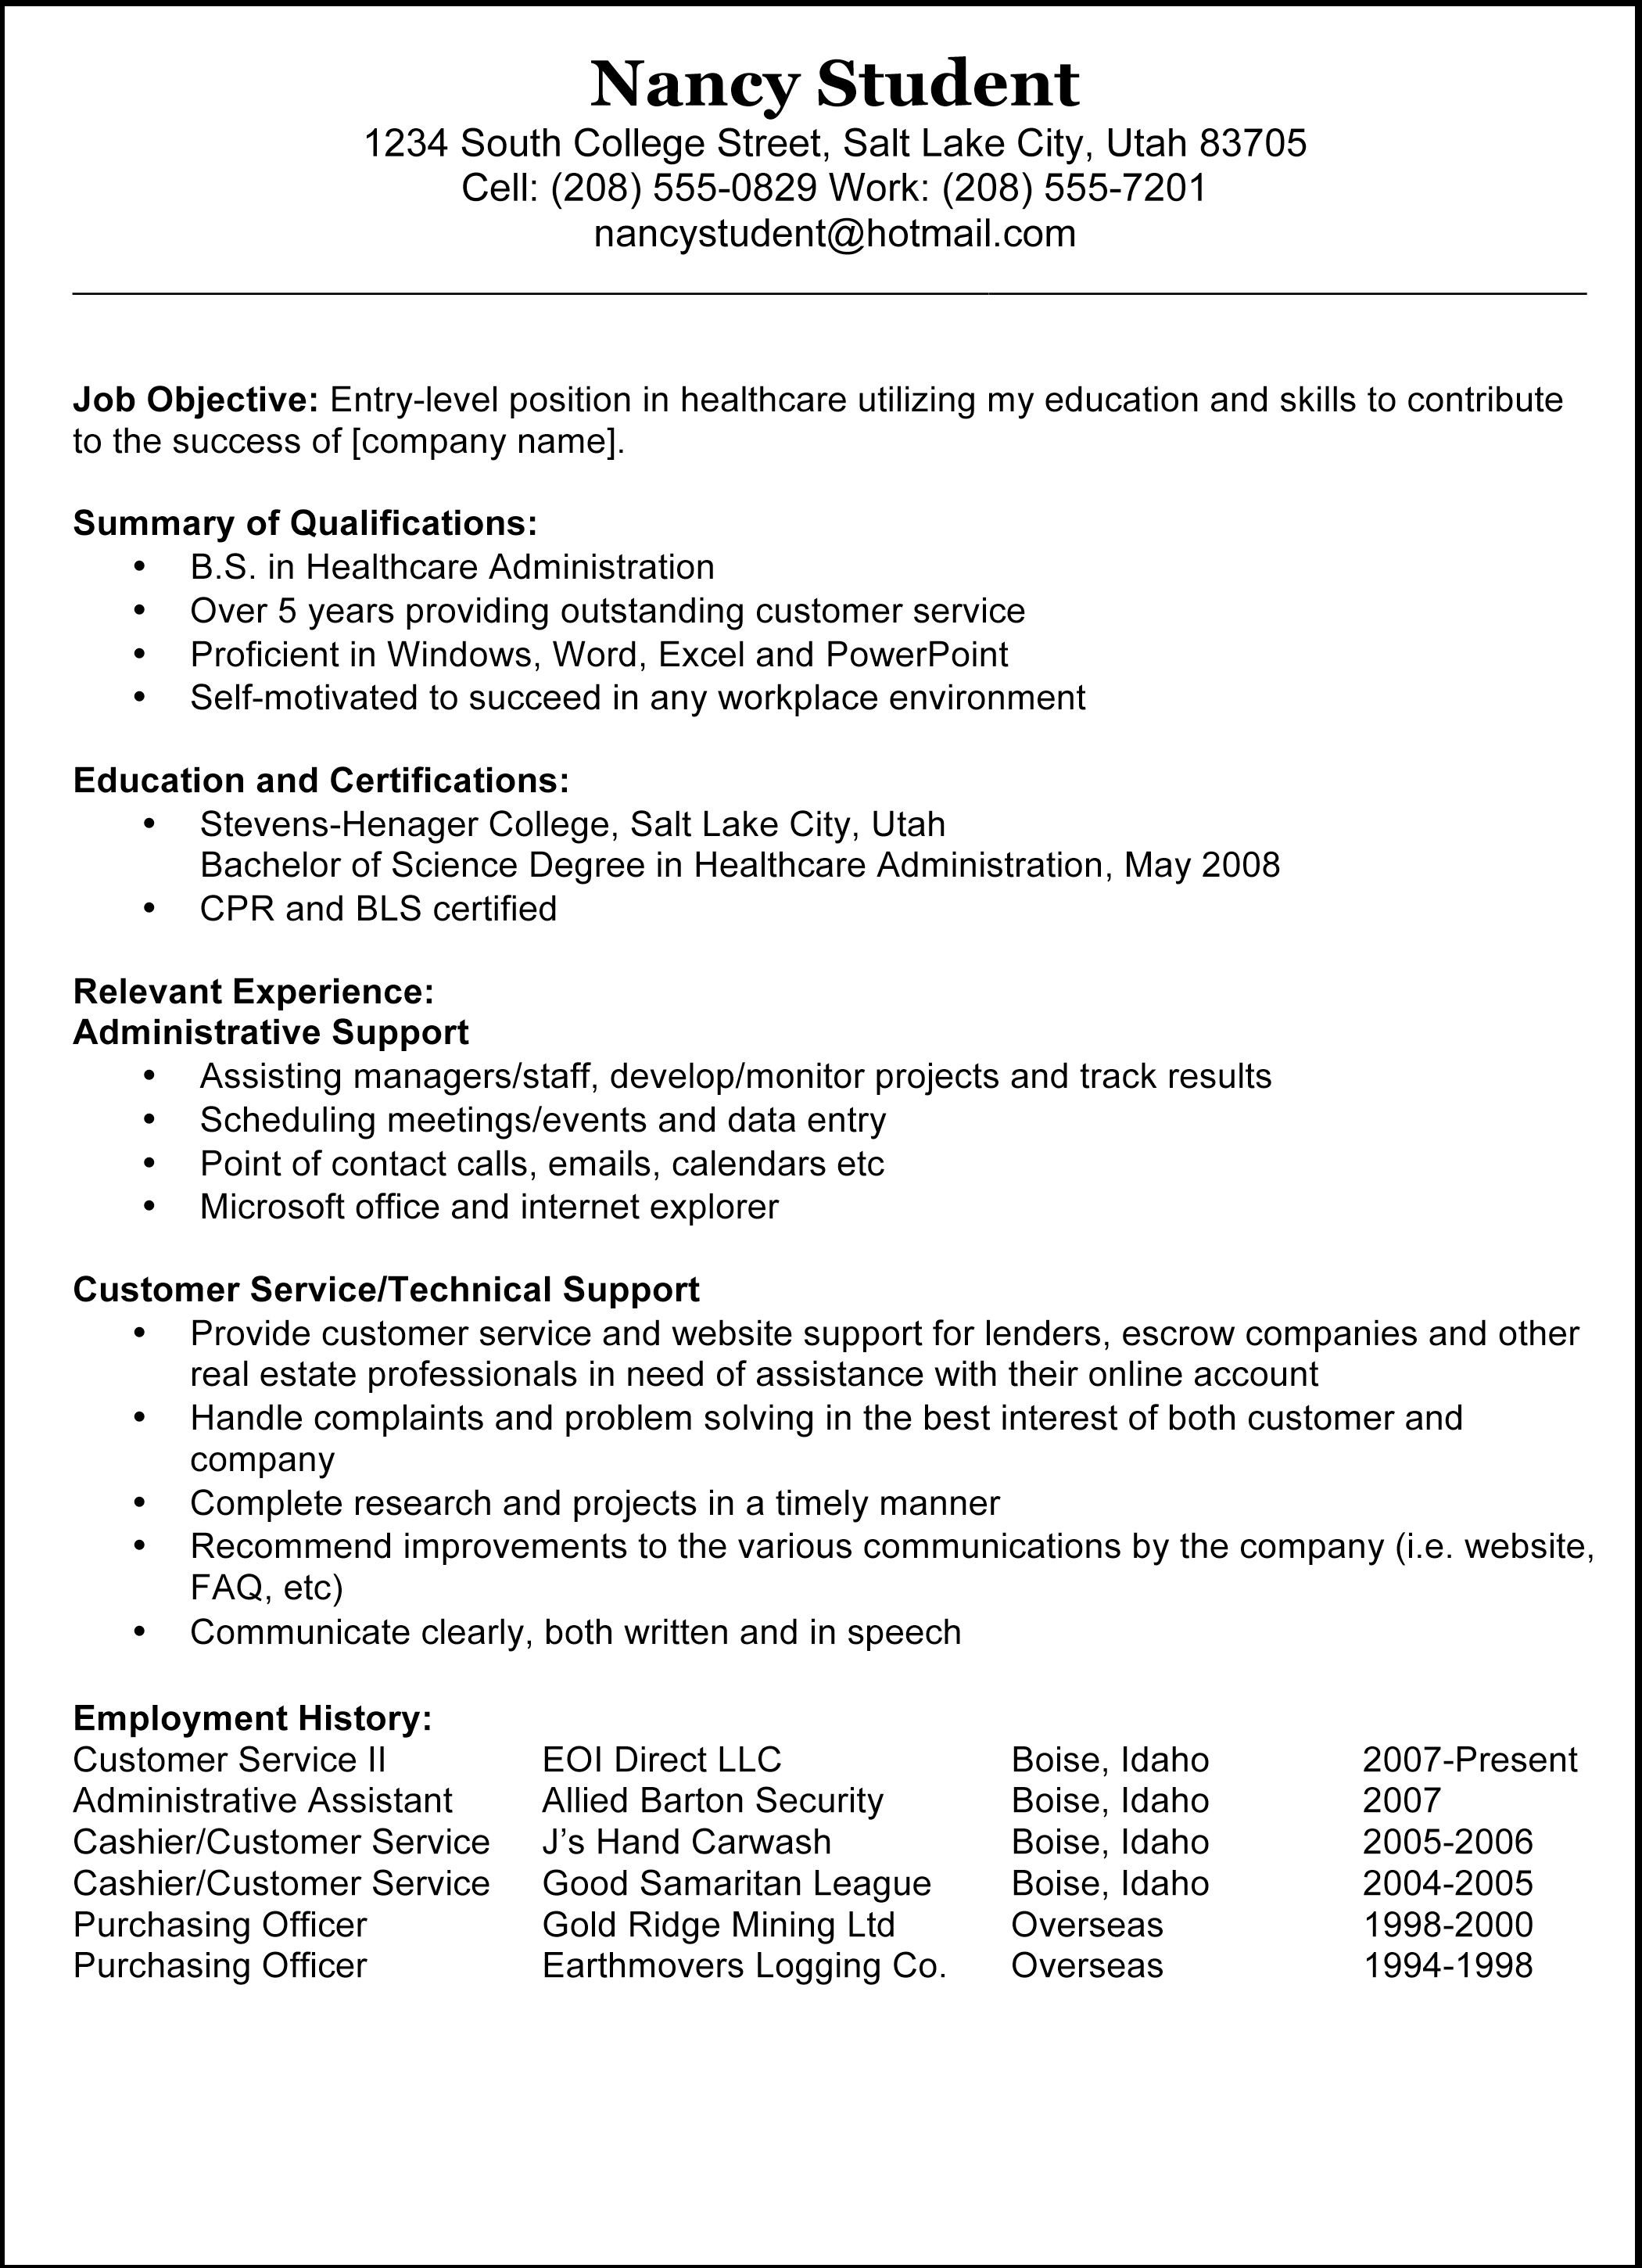 Resume Format Editable Copy Of 2014 Resume Sample Click On The Document For An